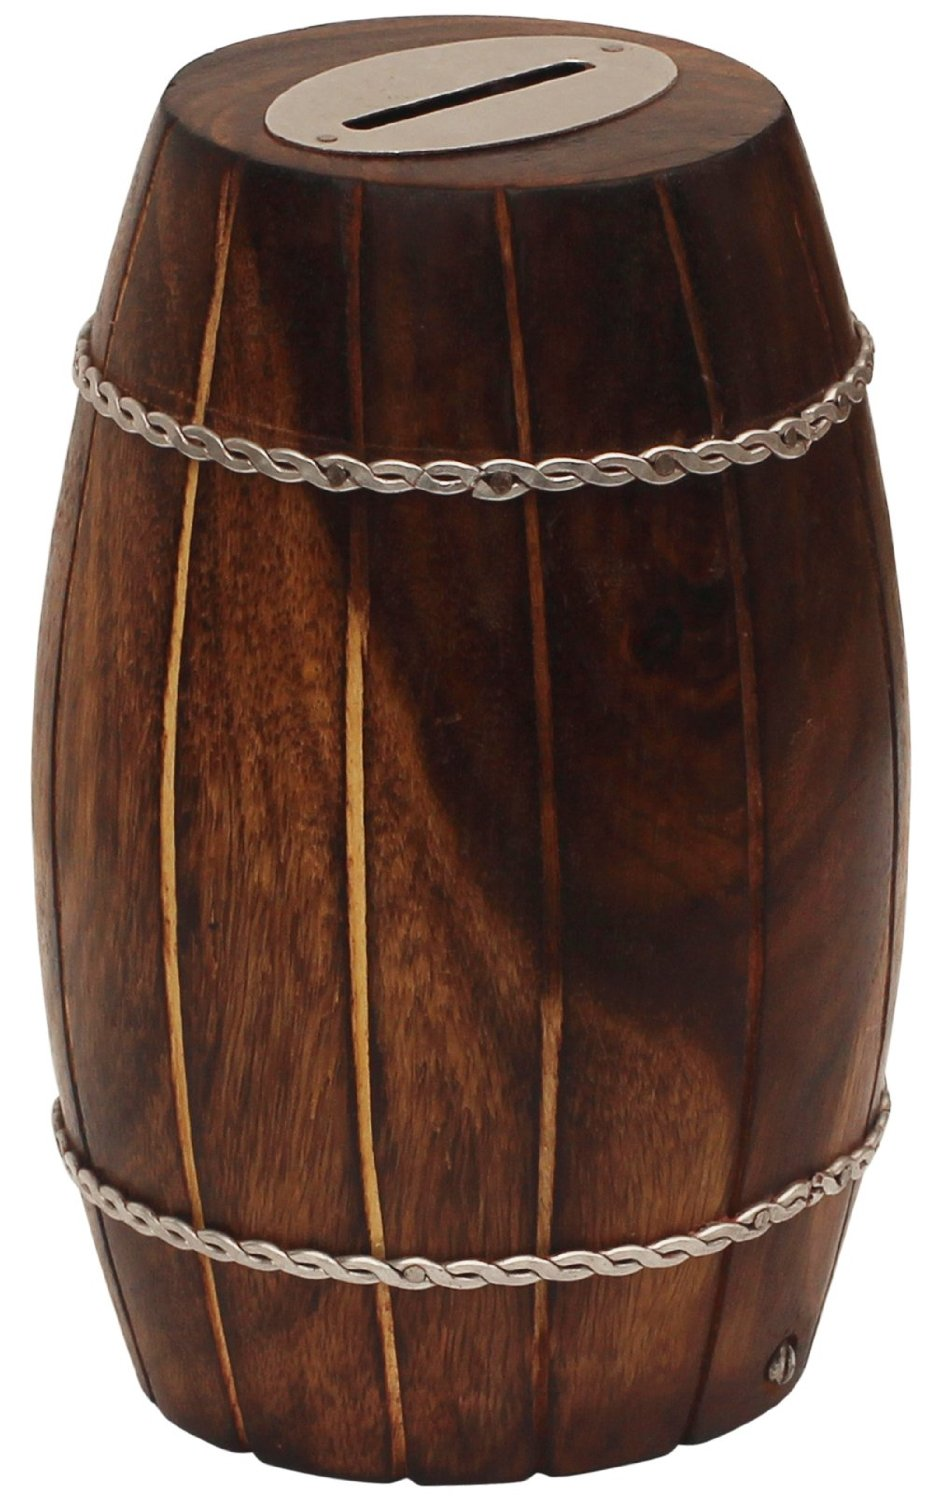 BULK Deals - SouvNear Wooden Coin Bank - 3.6 x 3.6 Inch - Barrel Shaped Money Bank in Mango-Wood - Decorated with Iron Chains - Rustic Look Piggy Bank / Coin Bank for Kids and Adults